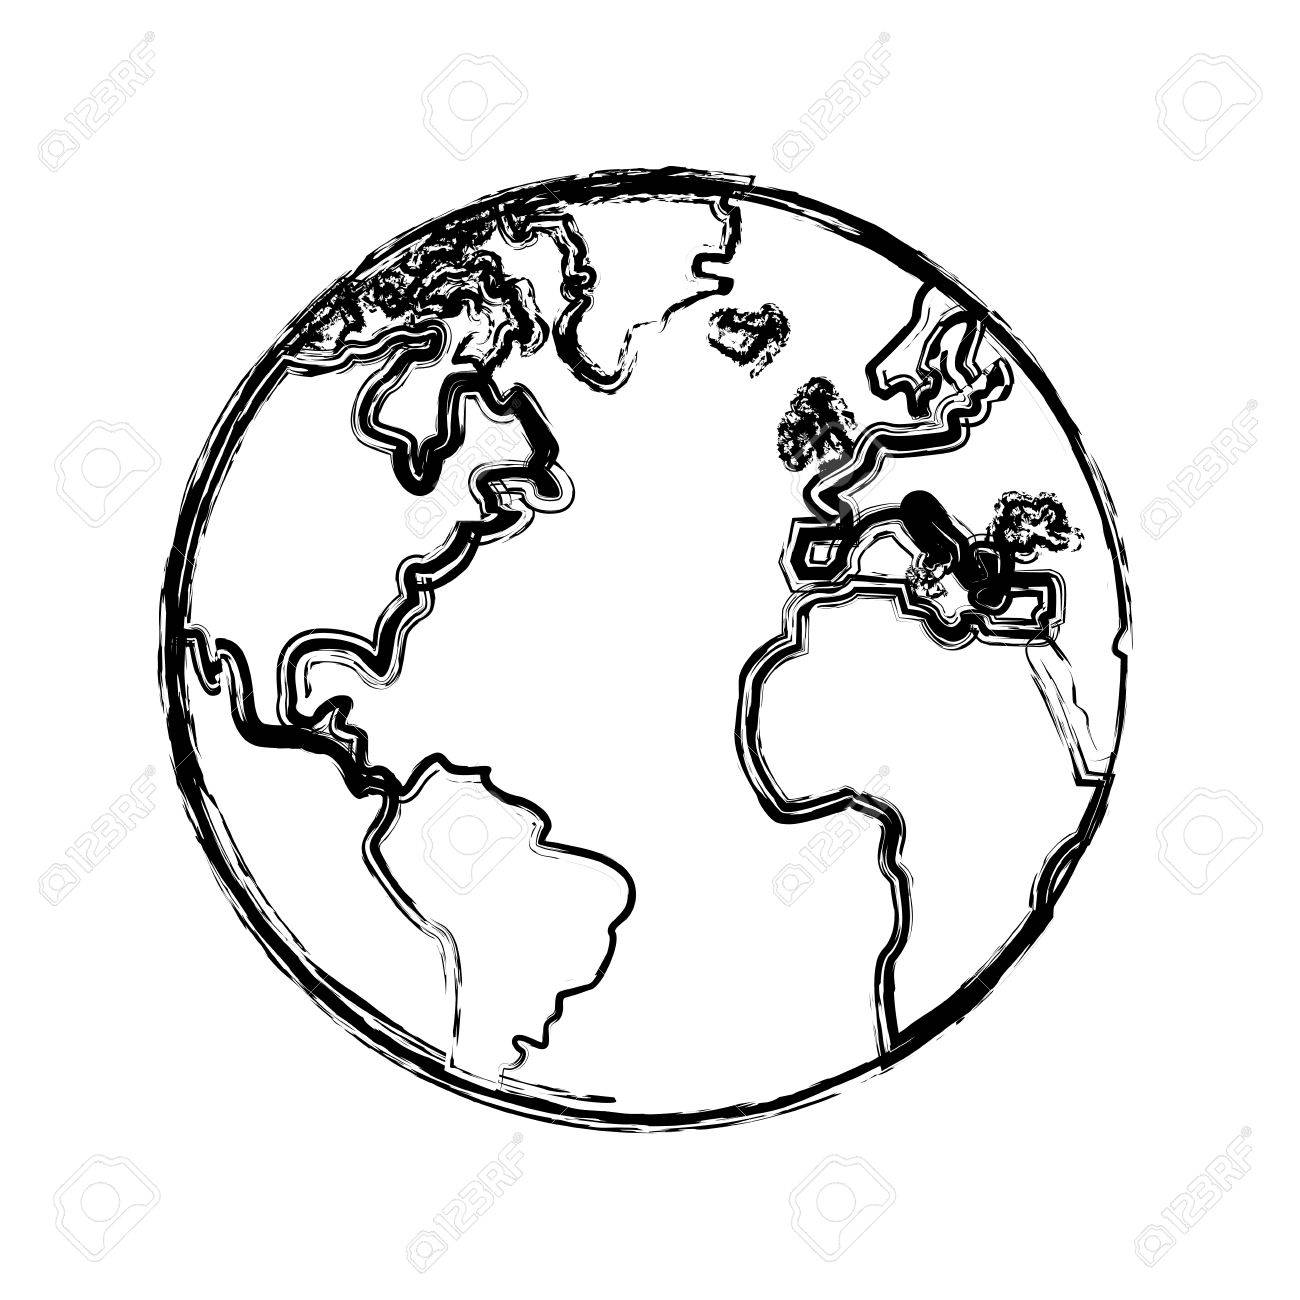 hight resolution of 1300x1300 sketch globe world earth map icon vector illustration royalty free